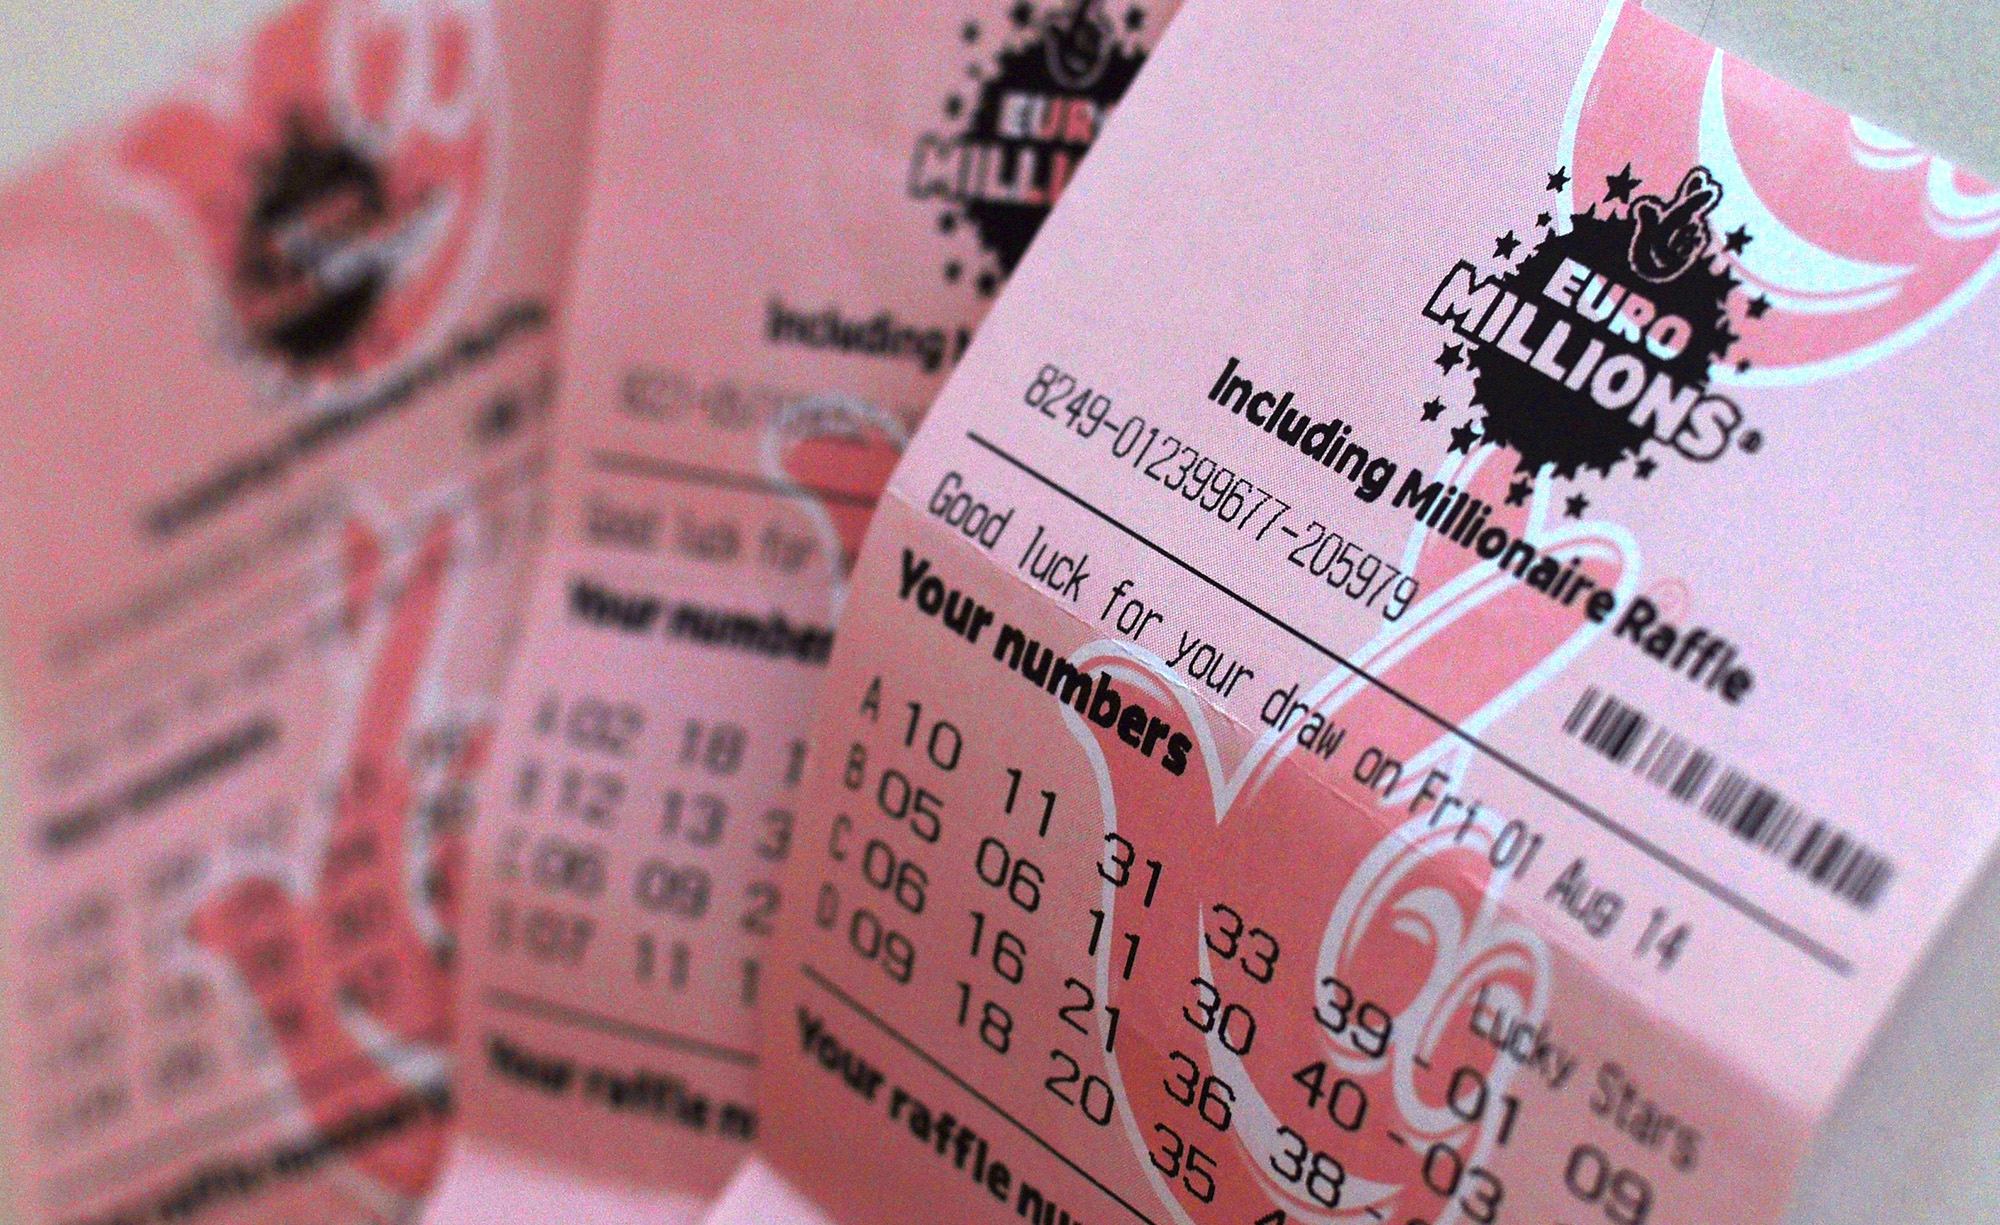 These are the most frequently drawn winning lottery numbers